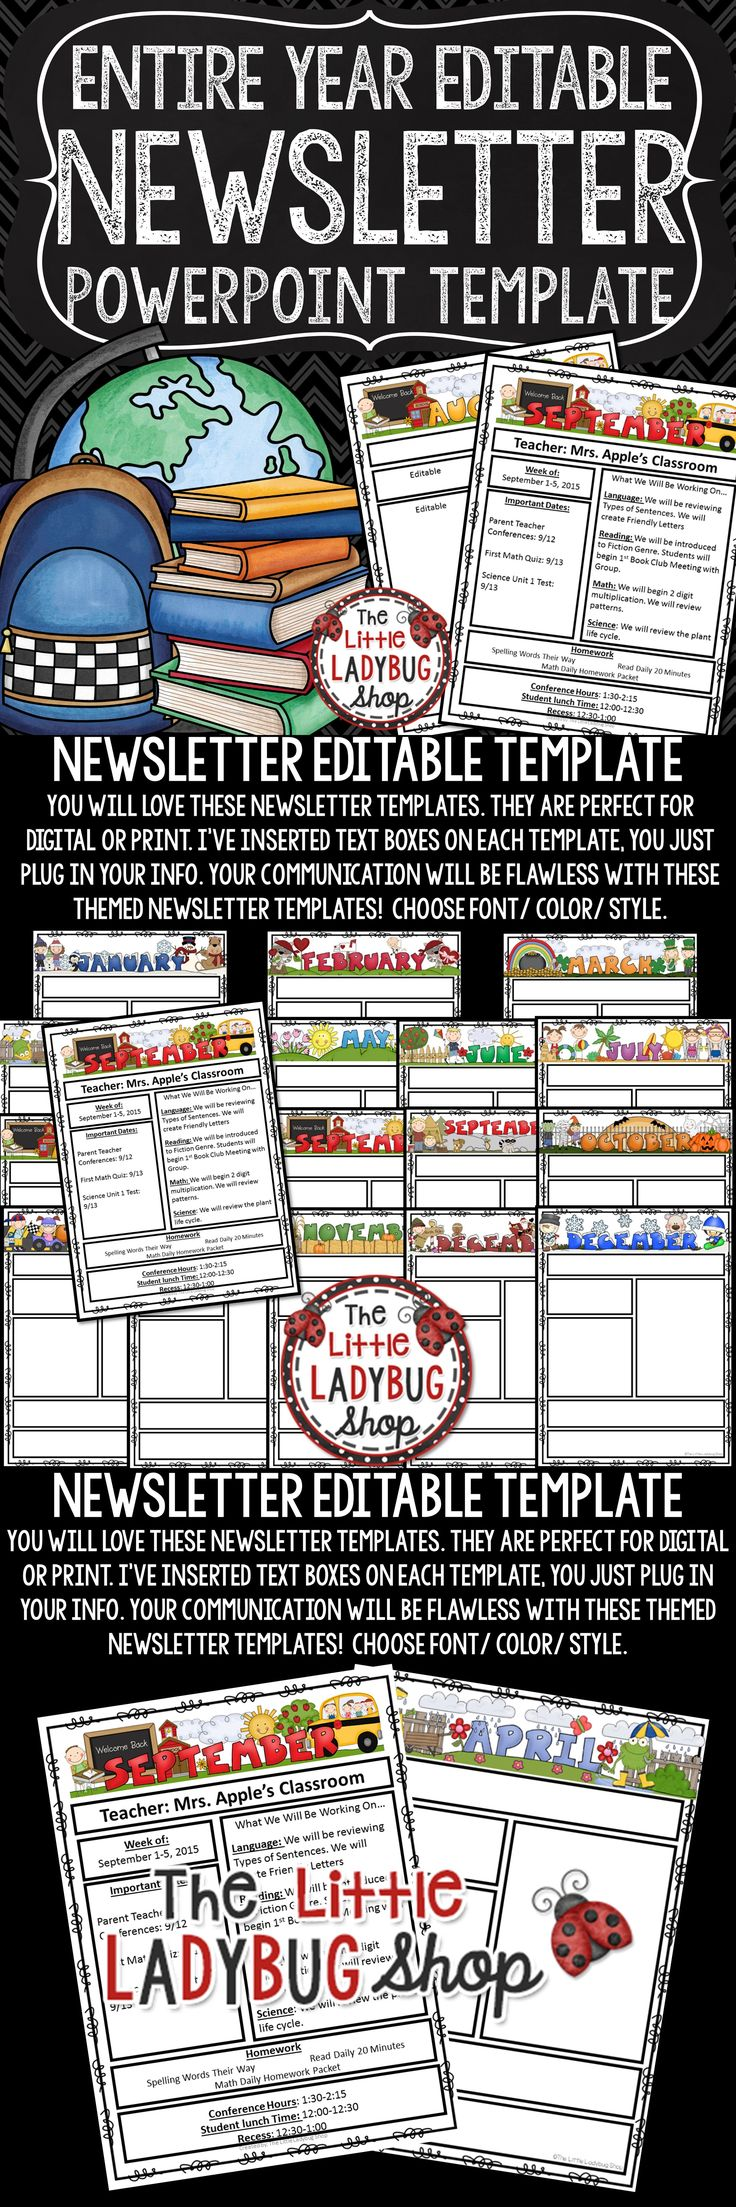 You will love these Weekly Classroom Newsletter Template -Editable with Monthly Themes, perfect for weekly/monthly communication with school, parents, and families. You will love sending these digitally or as a hard copy weekly or monthly!!!